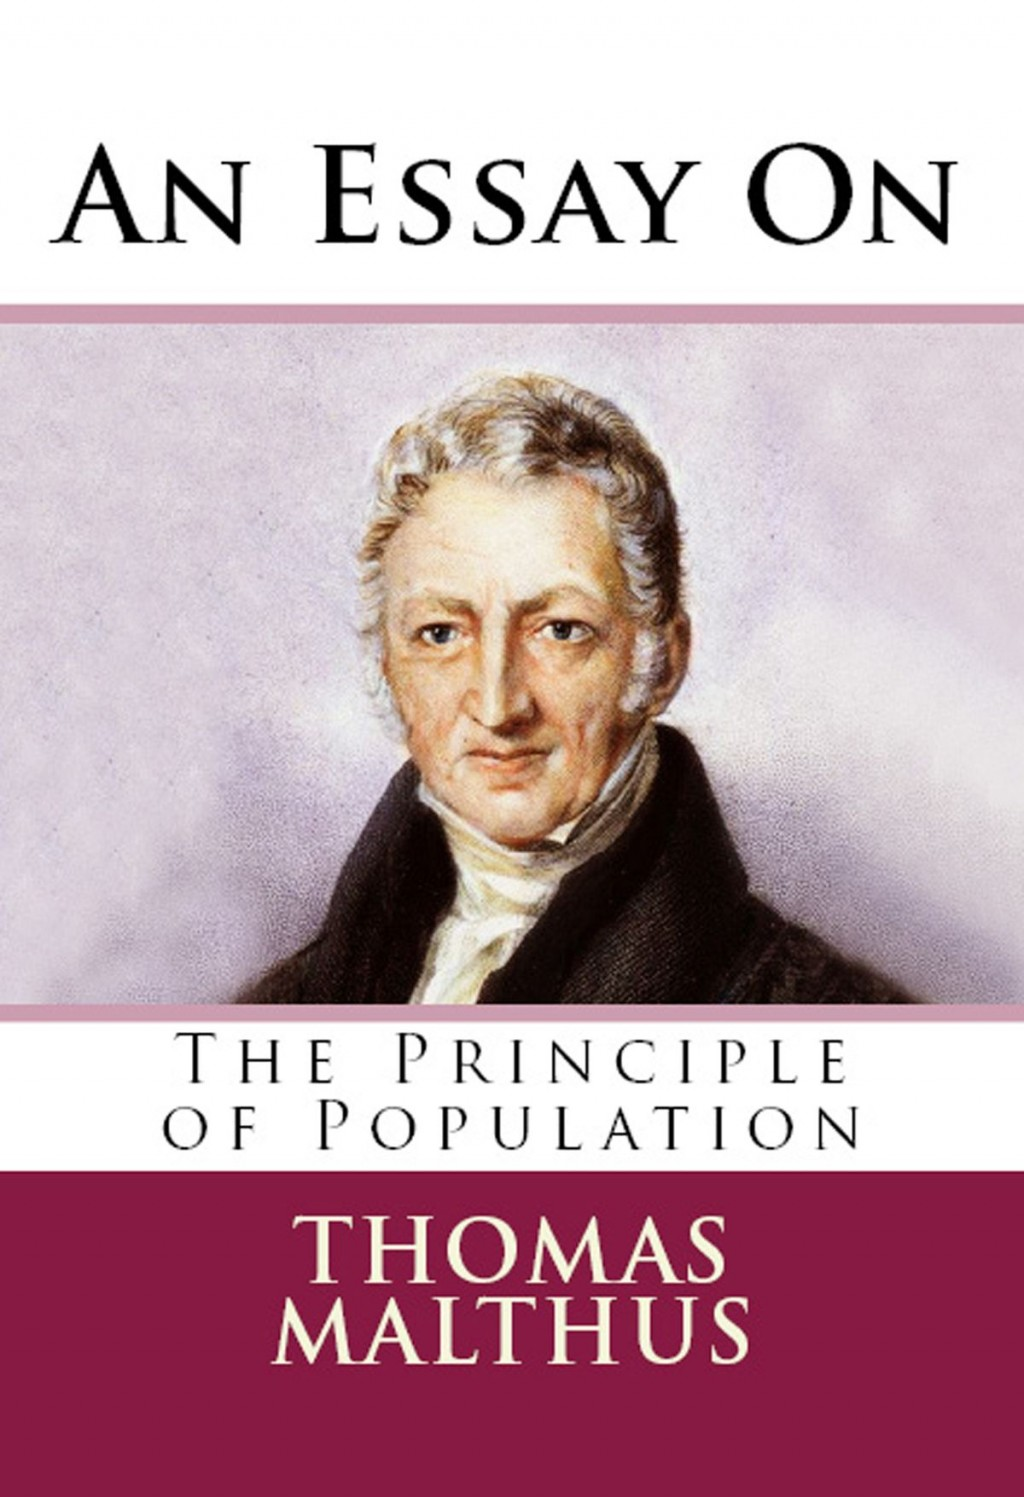 024 Essay Example An On The Principle Of Population Thomas Stupendous Malthus After Reading Malthus's Principles Darwin Got Idea That Ap Euro Large